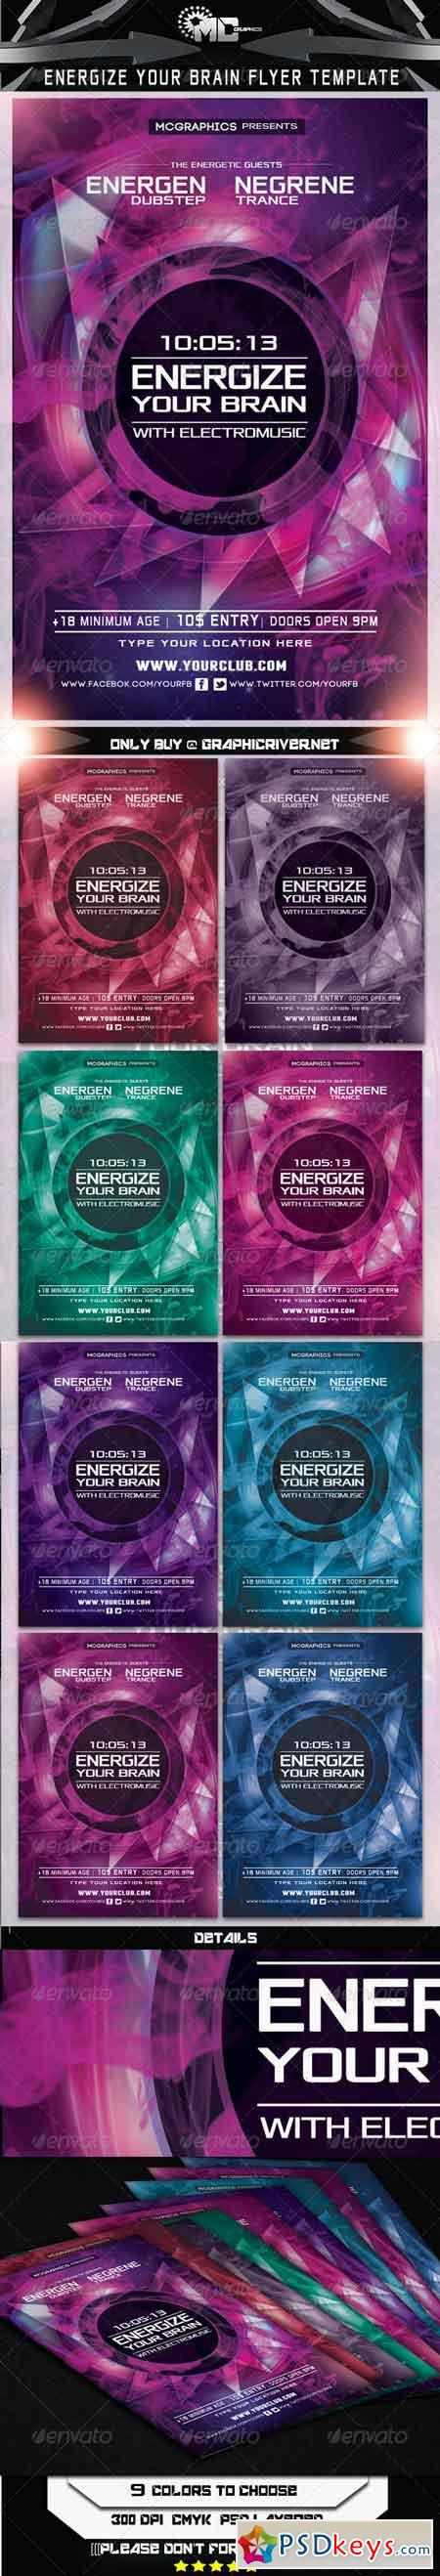 Energize your Brain Flyer Template 5743109